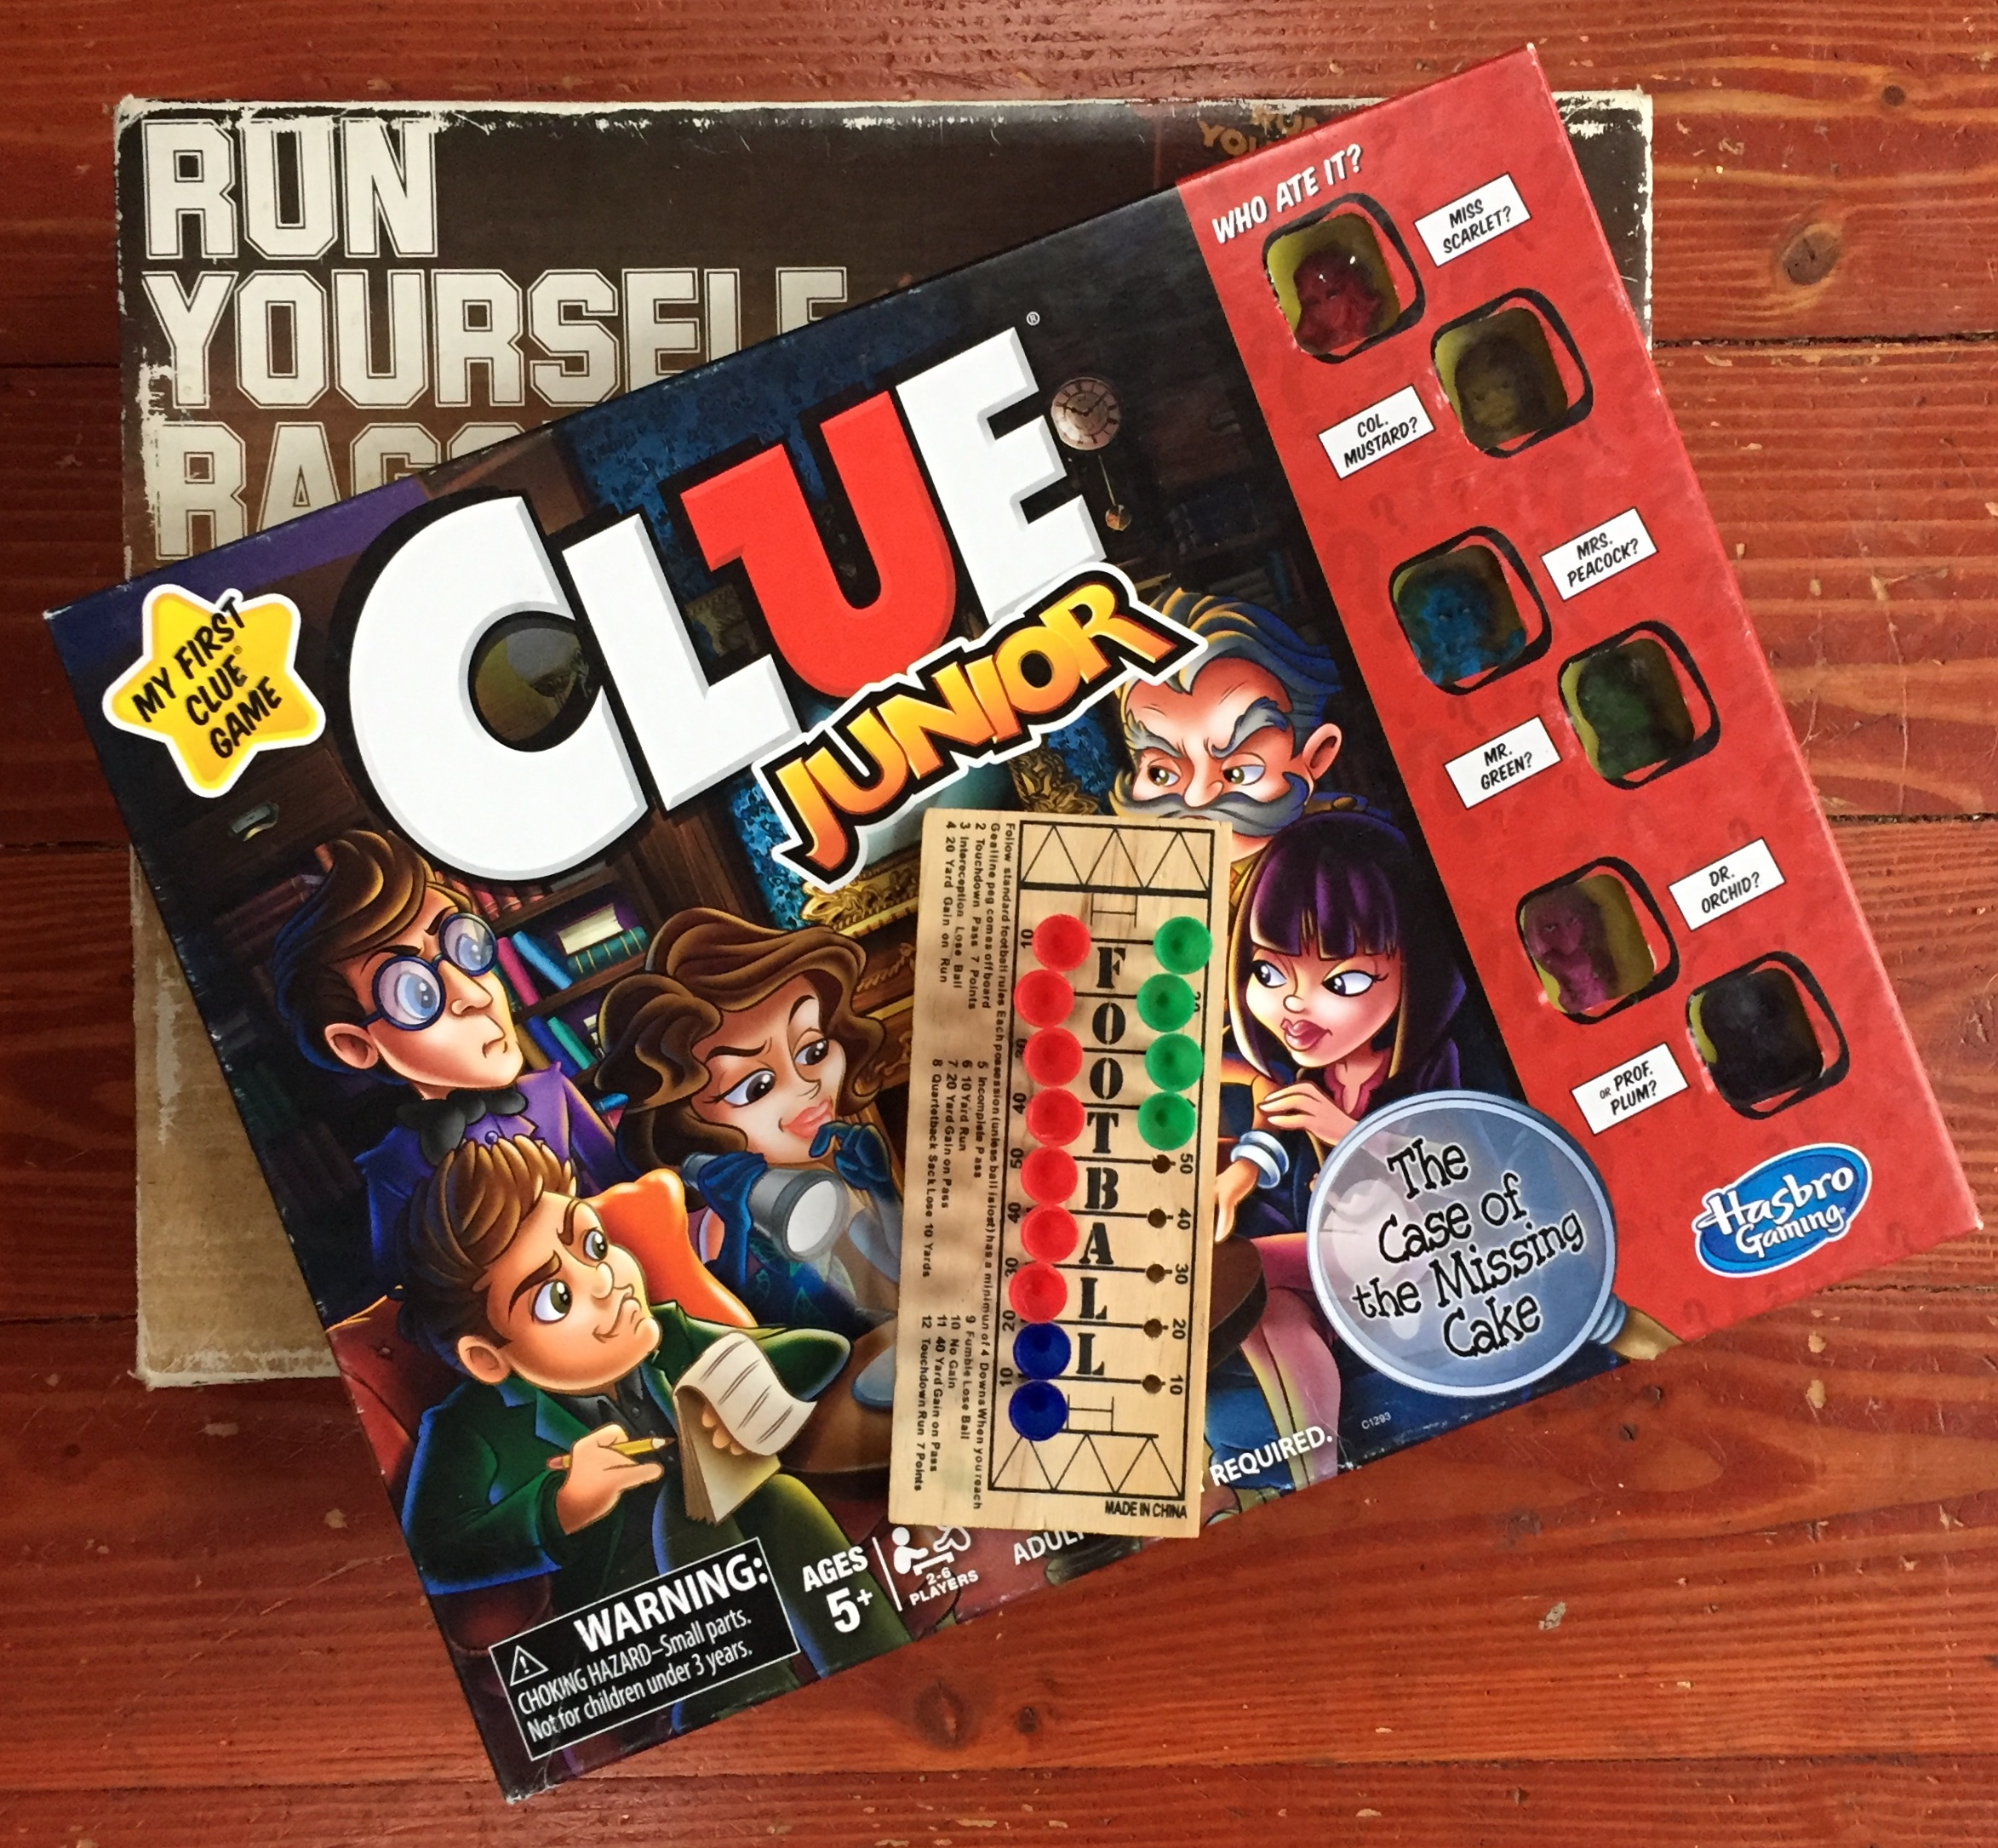 Run Yourself Ragged obstacle marble game, Clue Junior, and Football peg game in stack on hardwood floor